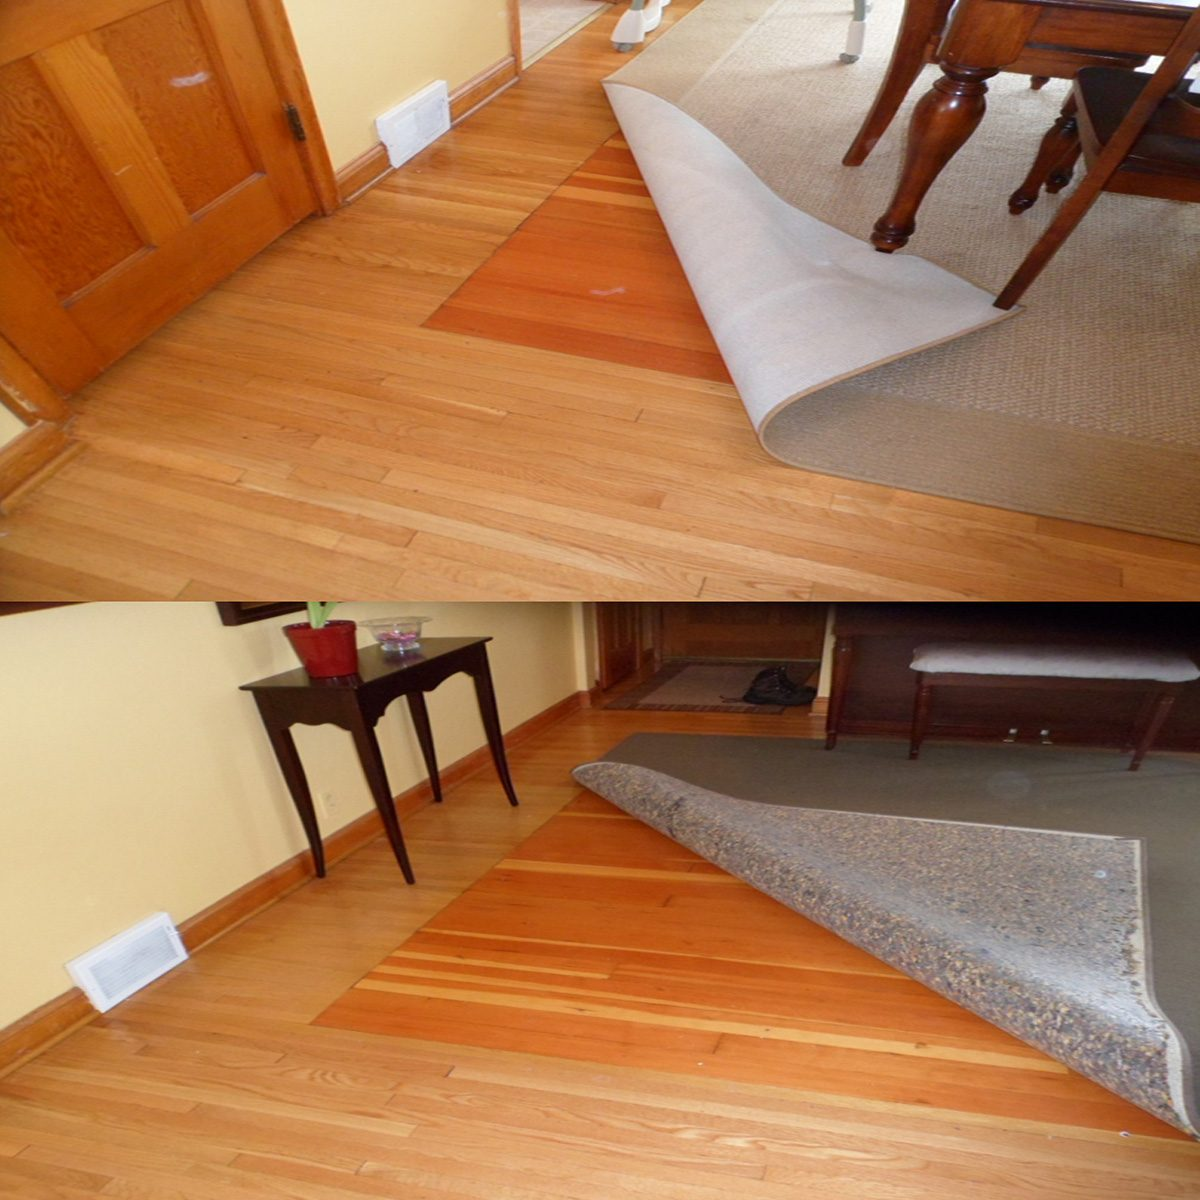 Different colored flooring hidden under a rug   Construction Pro Tips